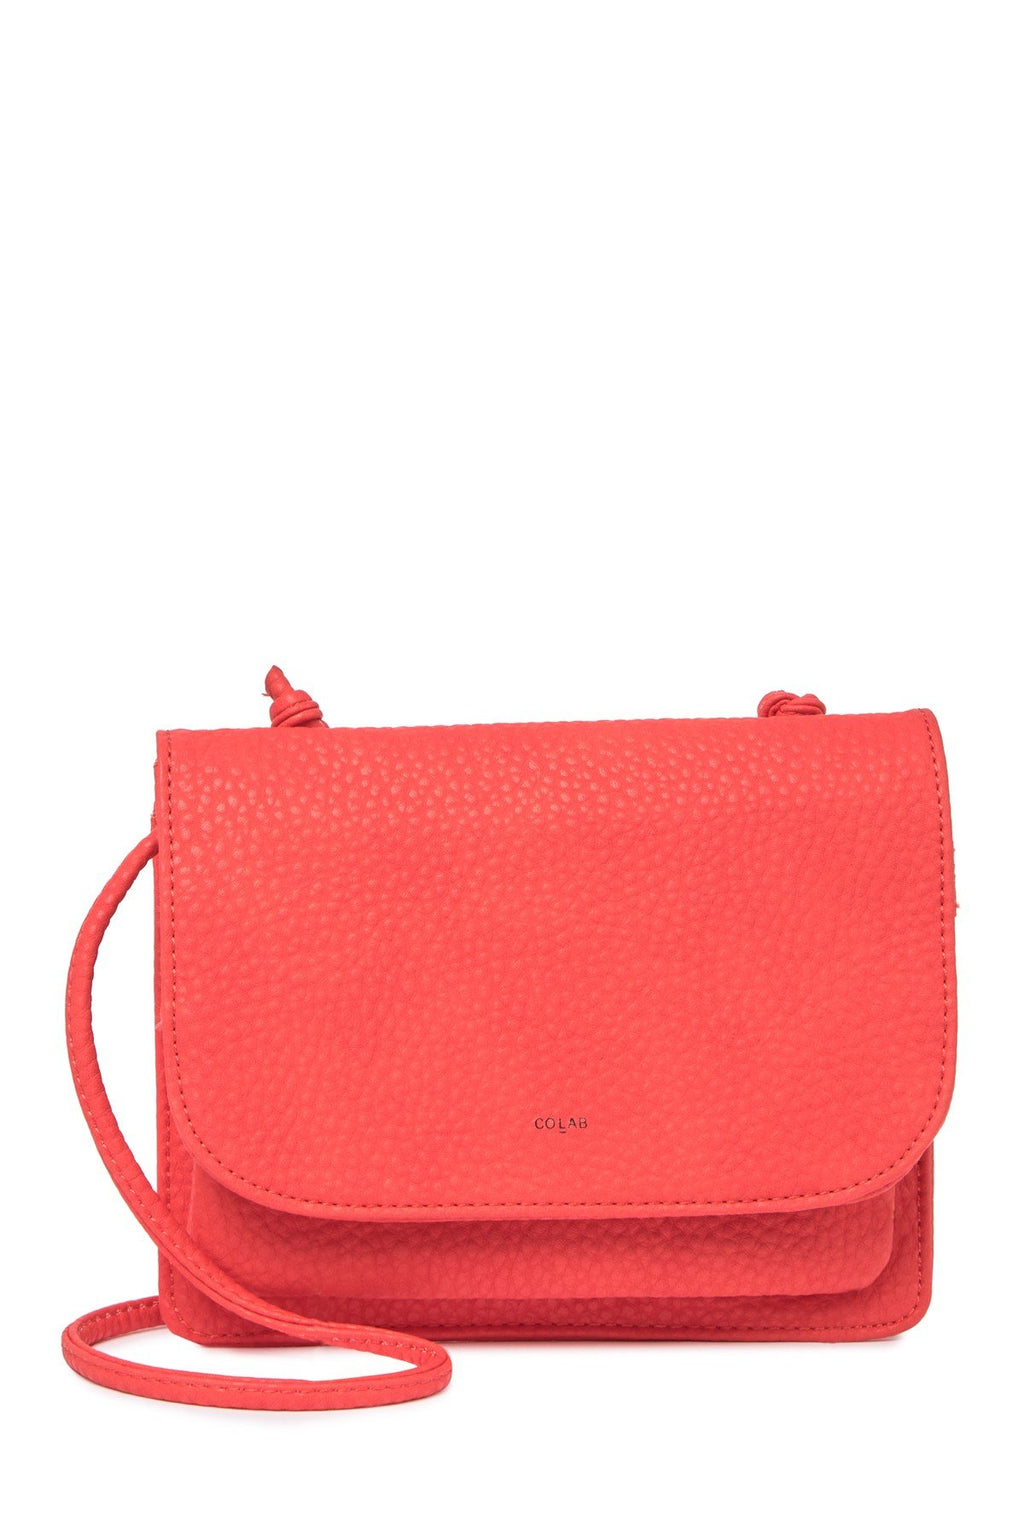 Co-Lab cayenne cross body carryall